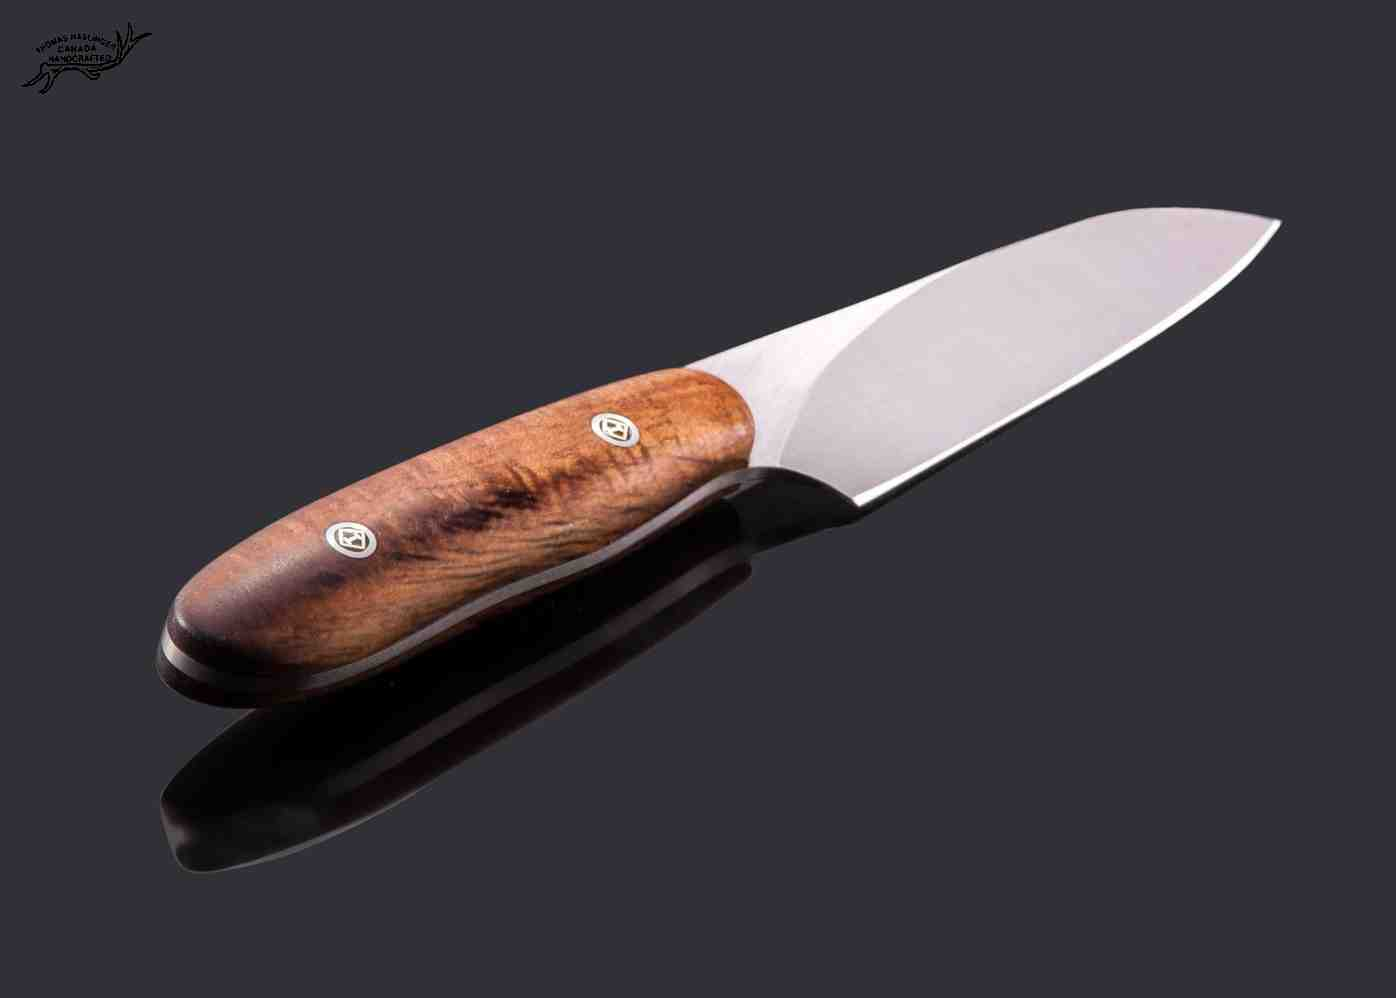 Santuko paring knife handled in spalted koa